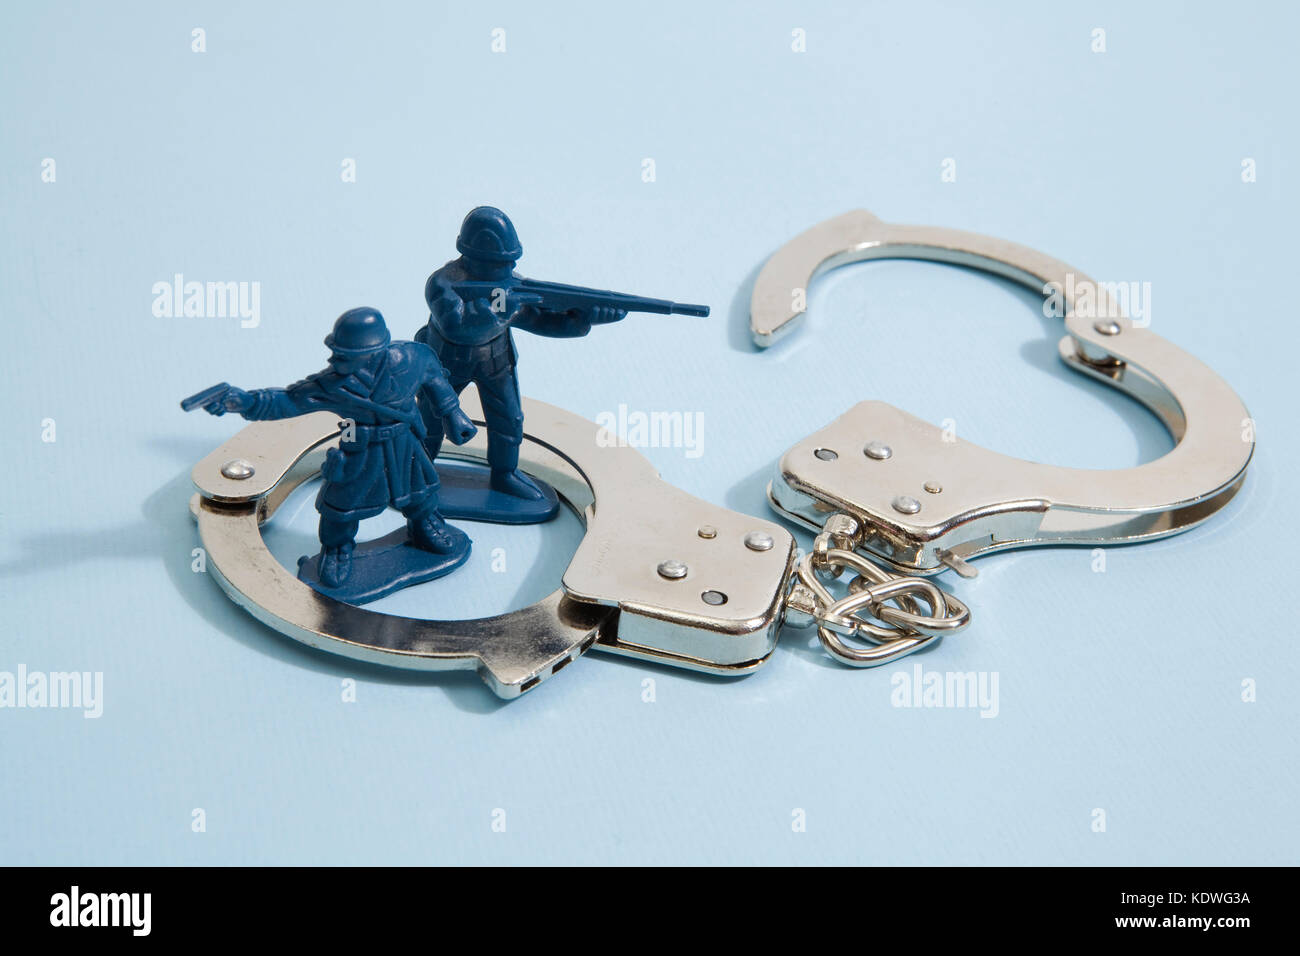 isolated handcuffs besieged plastic toy soldiers on a pop vibrant blue color background. Minimal color still life - Stock Image